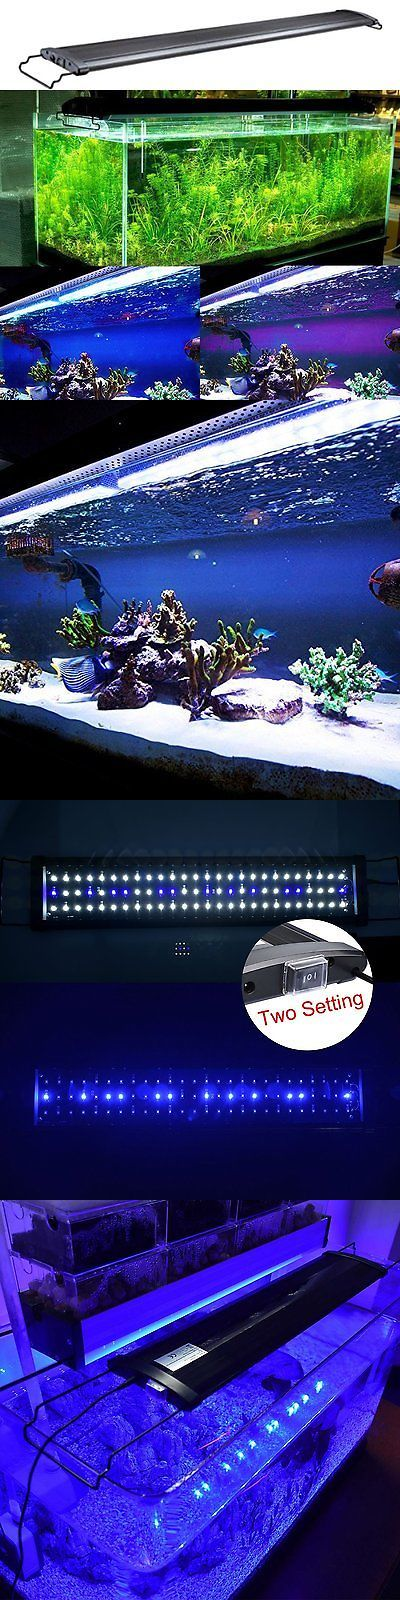 Animals Fish And Aquariums: Ae-Shop Aquarium Hood Lighting Fish Tank Light For Freshwater And Saltwater, And -> BUY IT NOW ONLY: $35.09 on eBay!